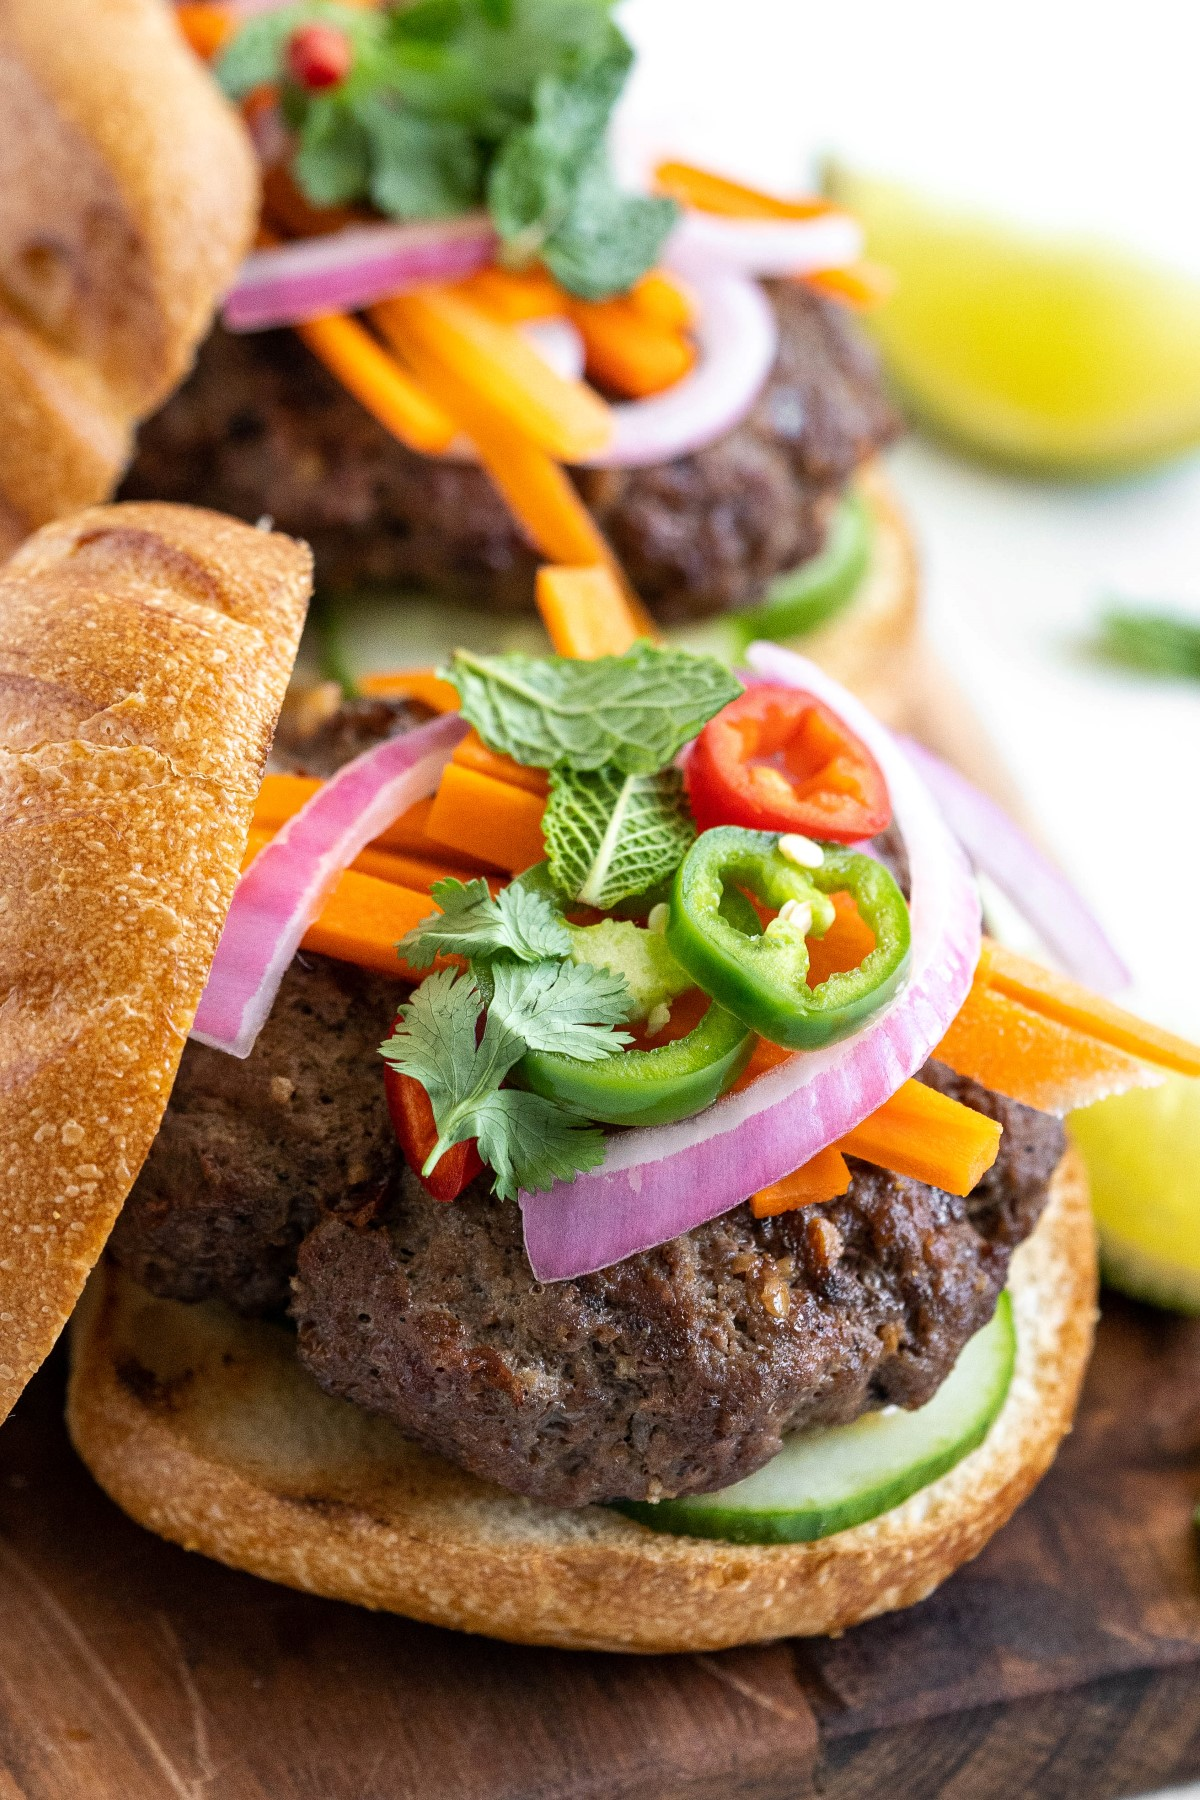 Banh Mi Burger topped with quick pickled veggies on a toasted bun